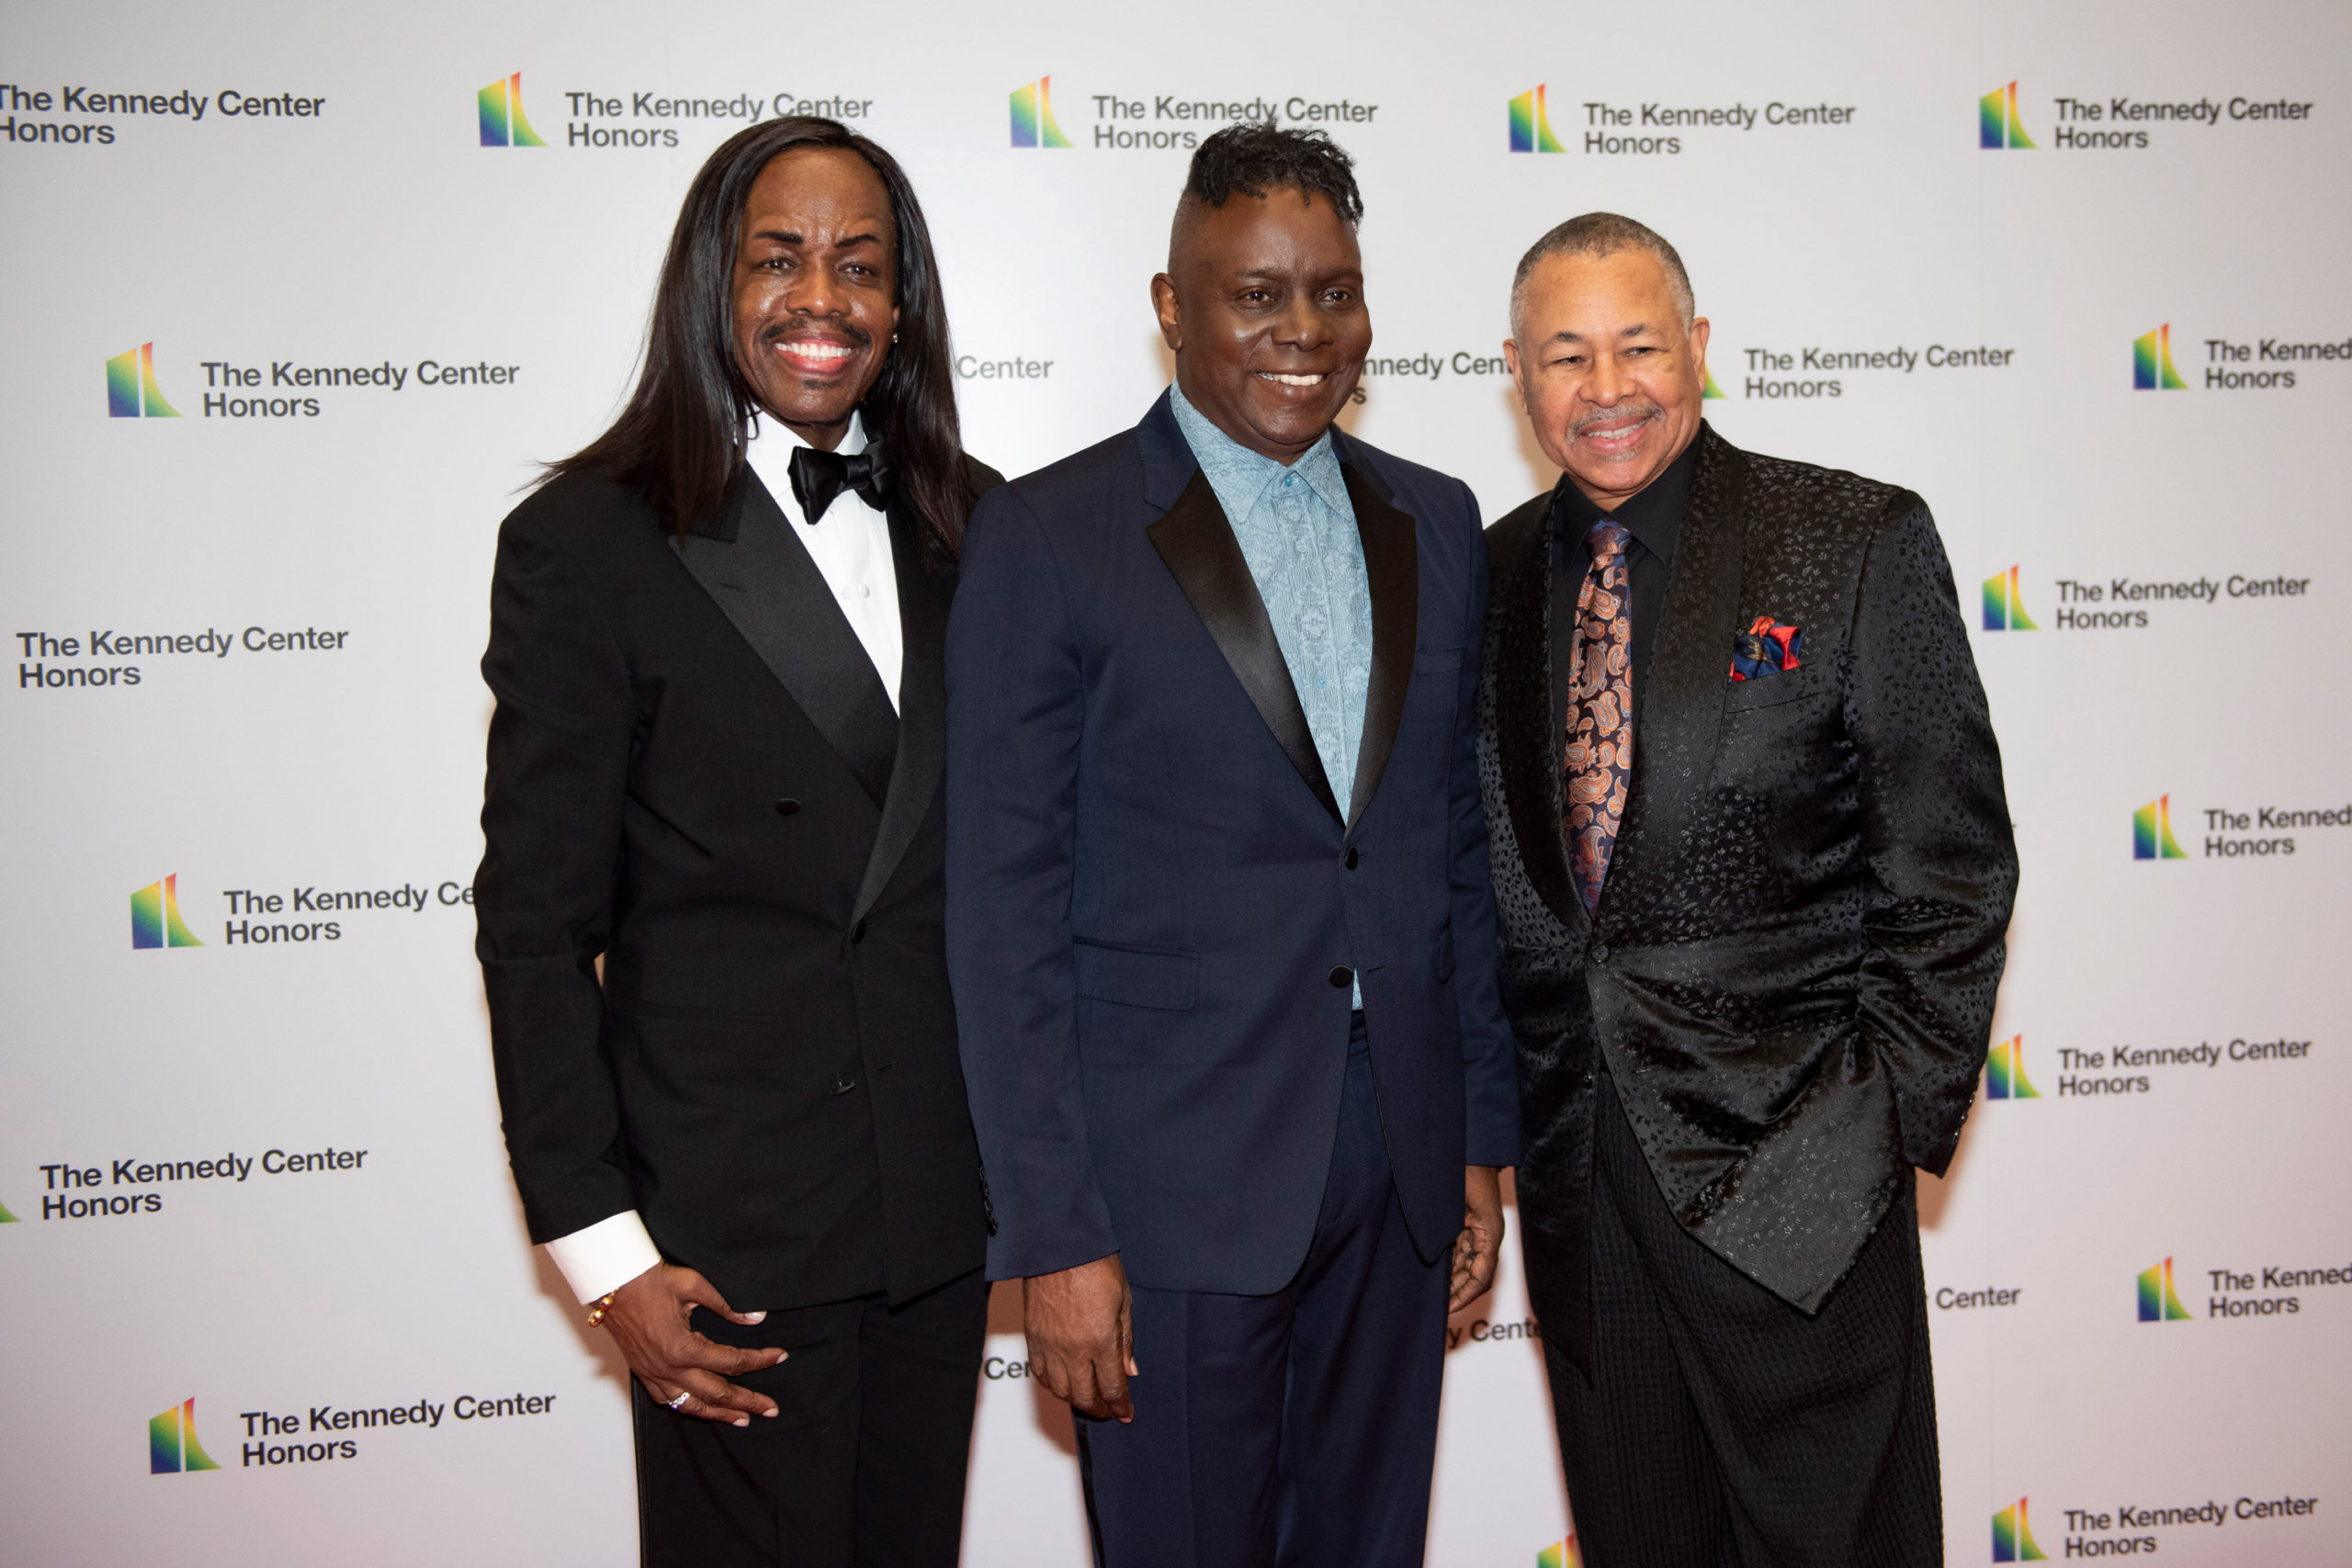 2019 Kennedy Center Honorees Earth, Wind & Fire members, from left, bassist Verdine White, singer Philip Bailey and percussionist Ralph Johnson arrive at the State Department for the Kennedy Center Honors State Department Dinner on Saturday, Dec. 7, 2019, in Washington.